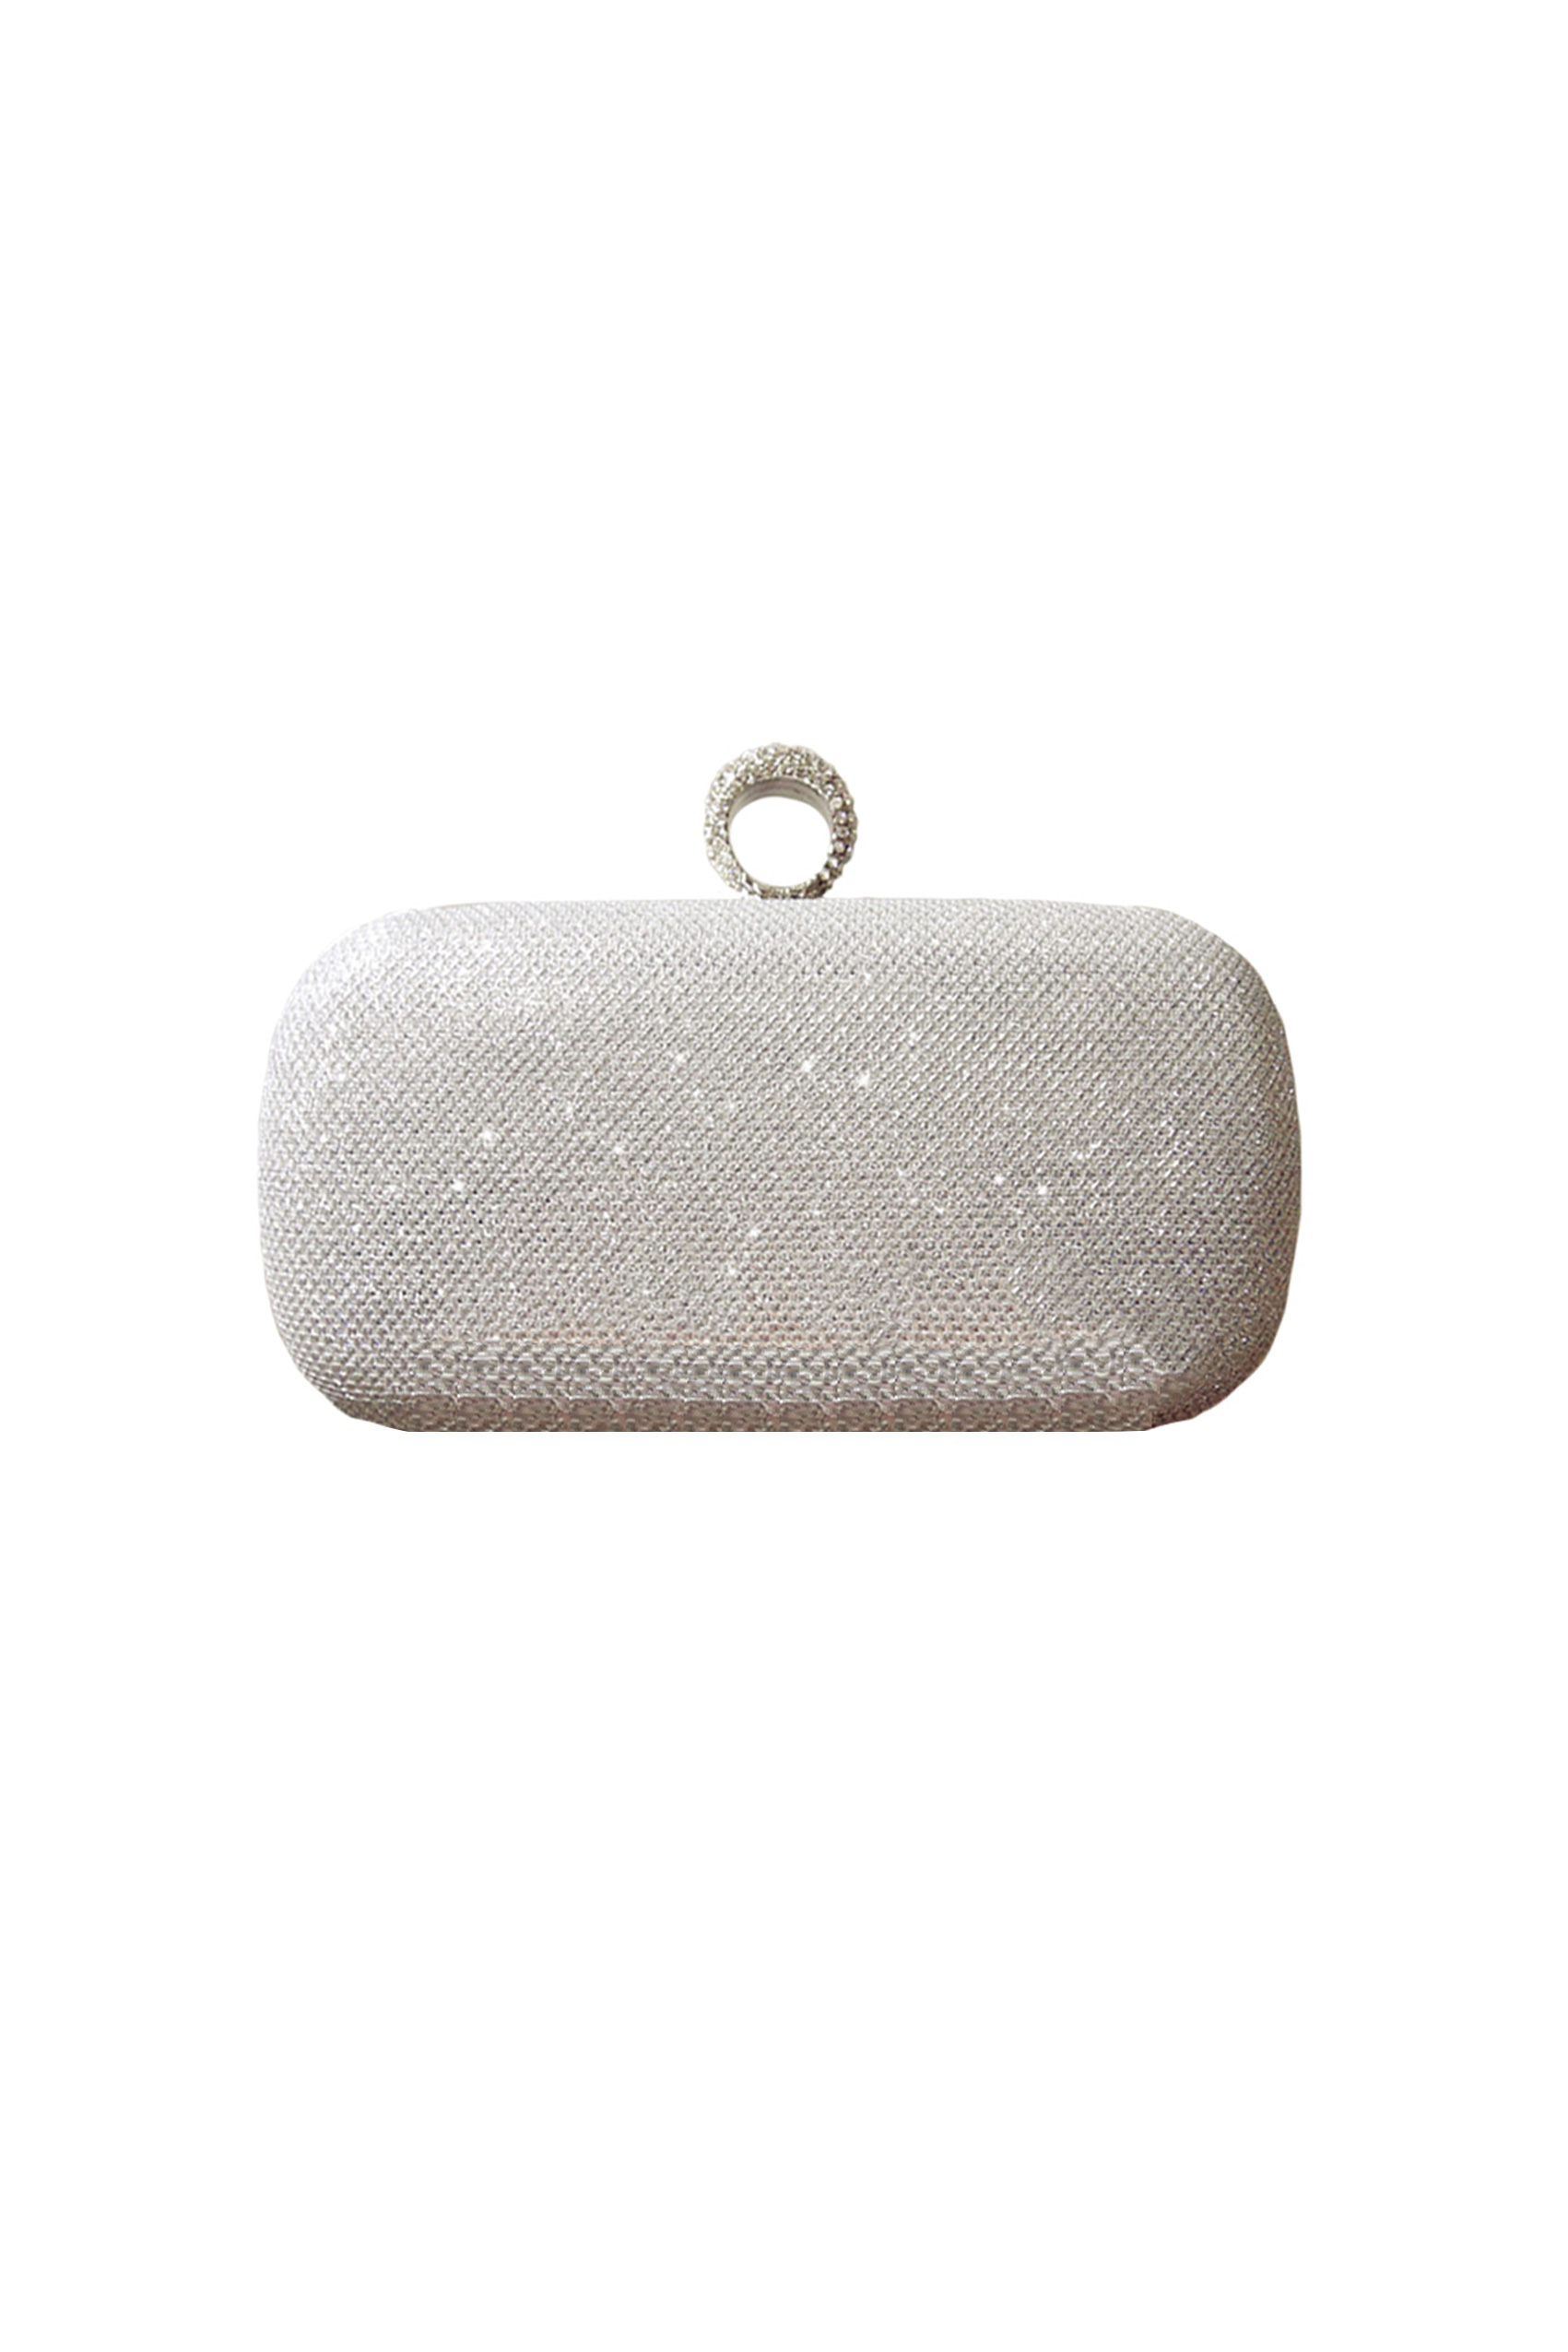 [SELL][Petit Julie Glitter Ring Clutch]by Petit Julie